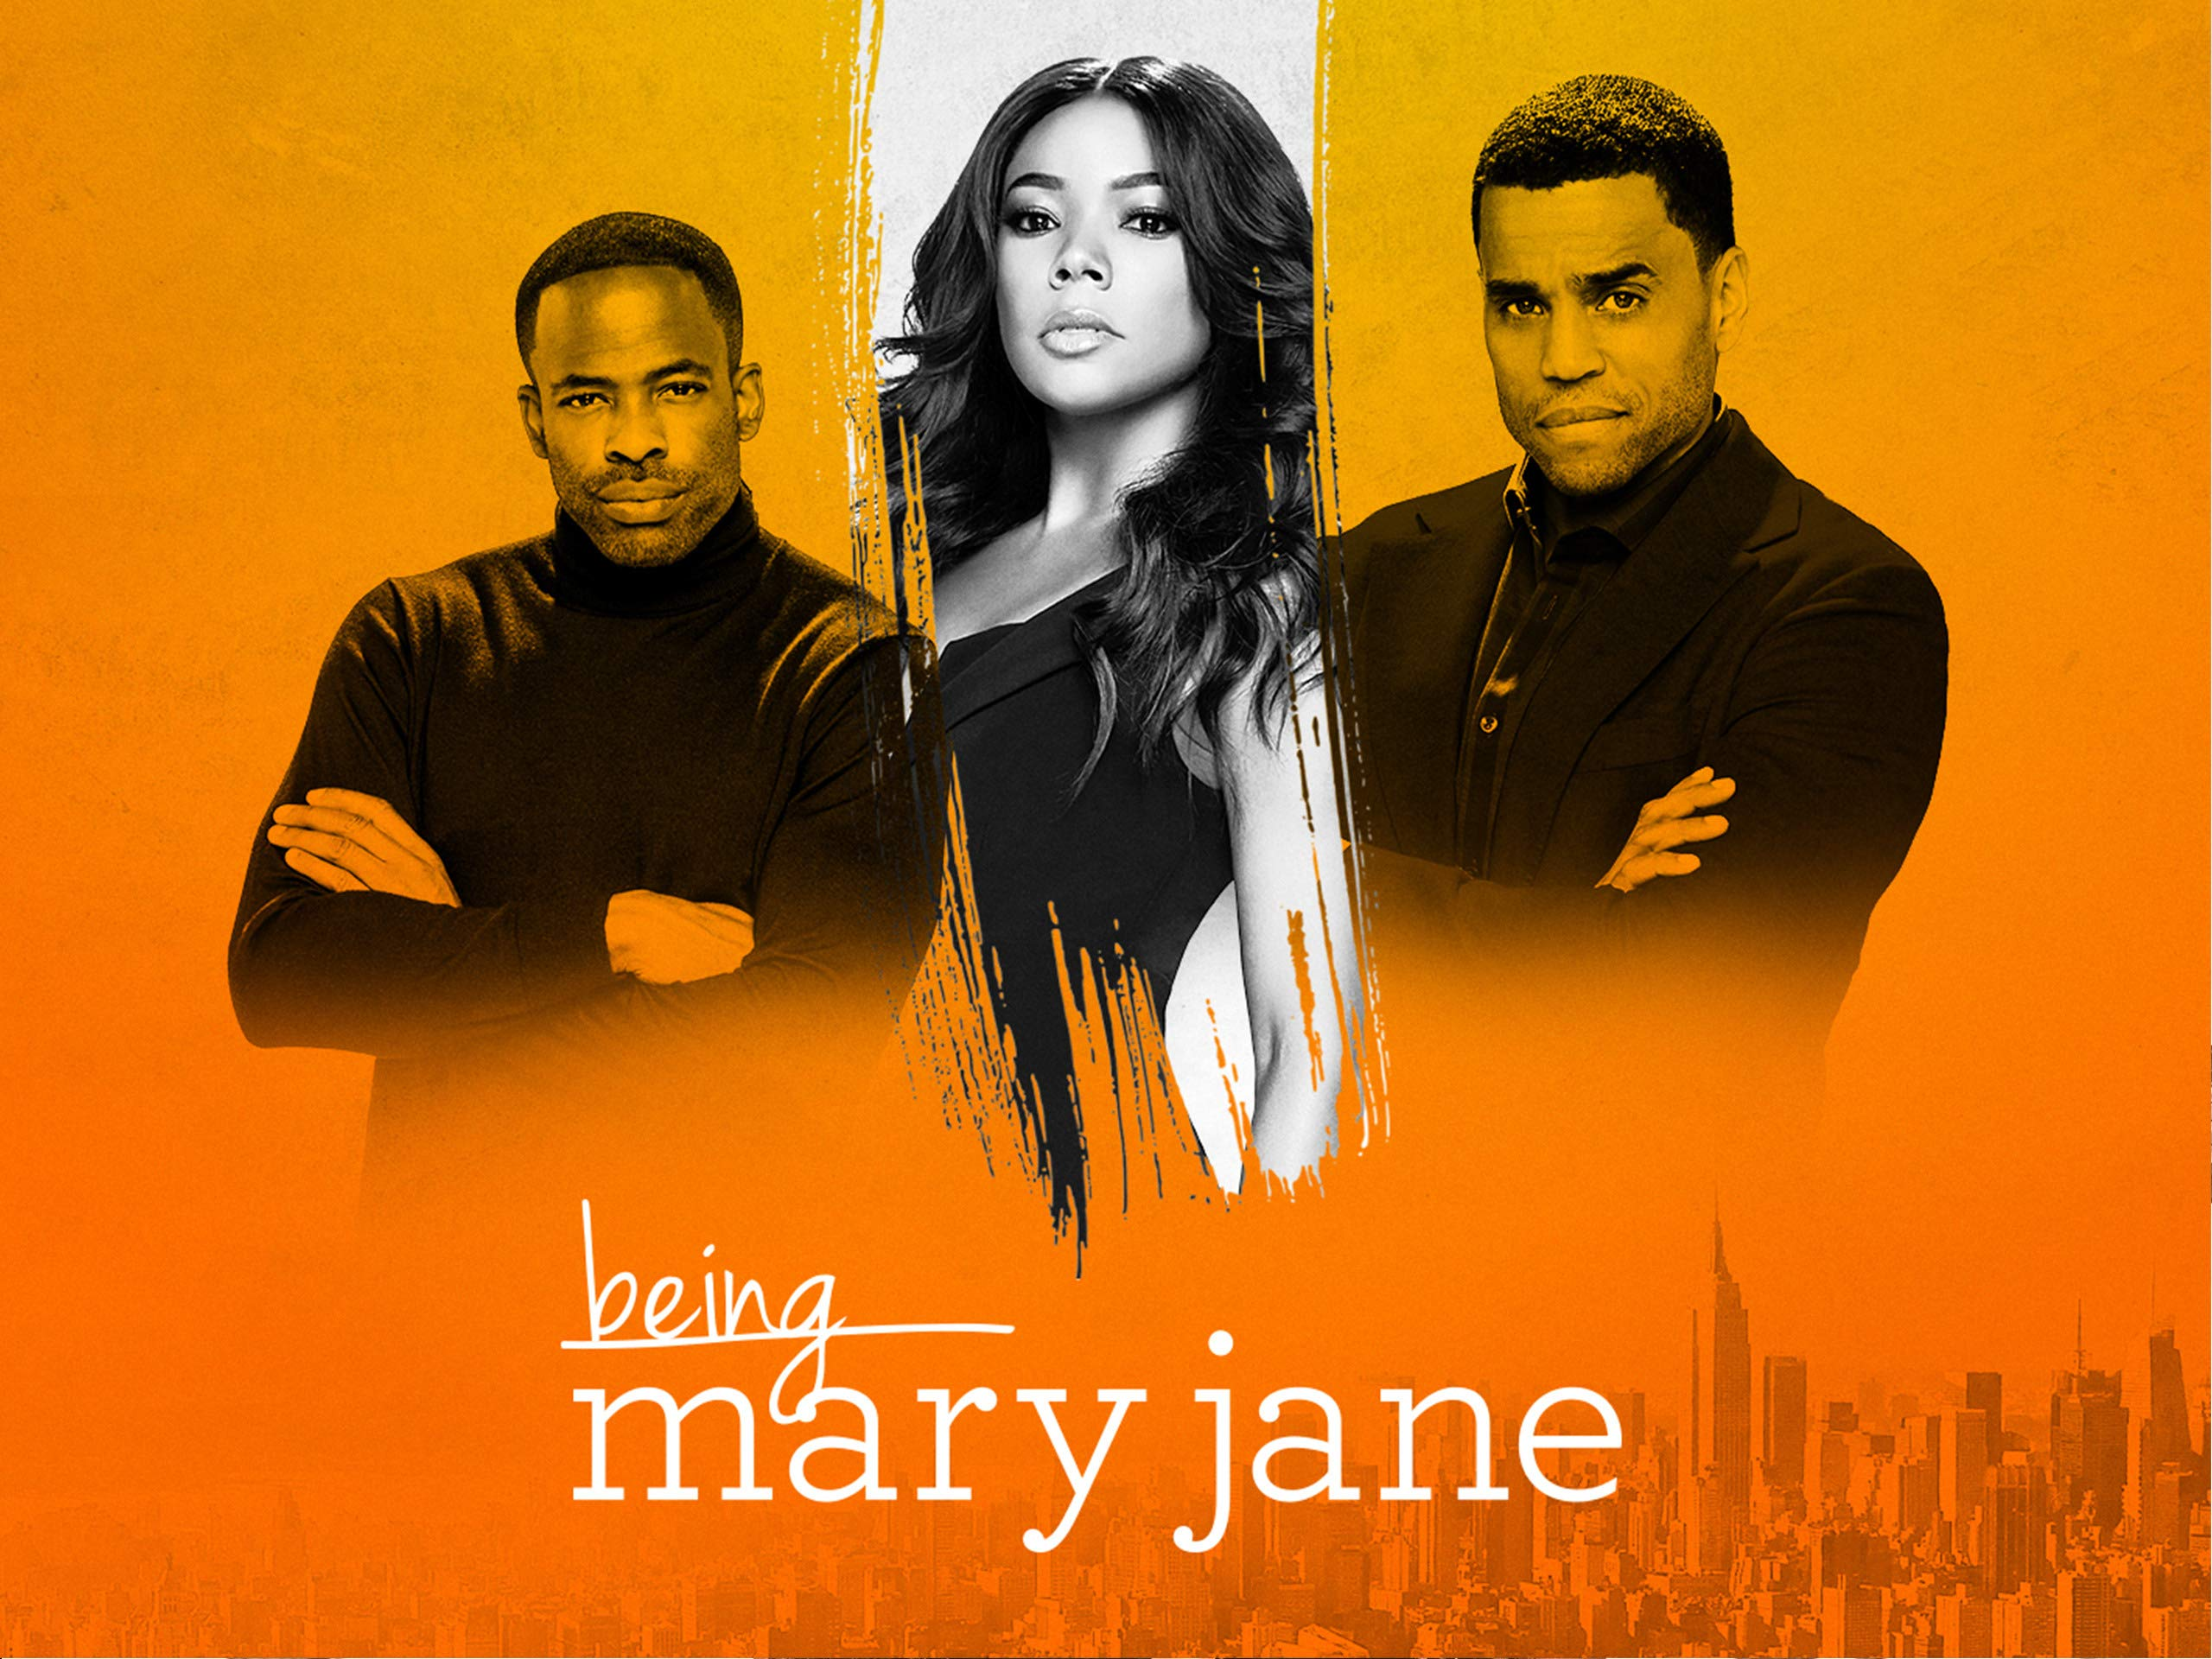 Being mary jane on bet app leelanau physical bitcoins and bitcoins wiki